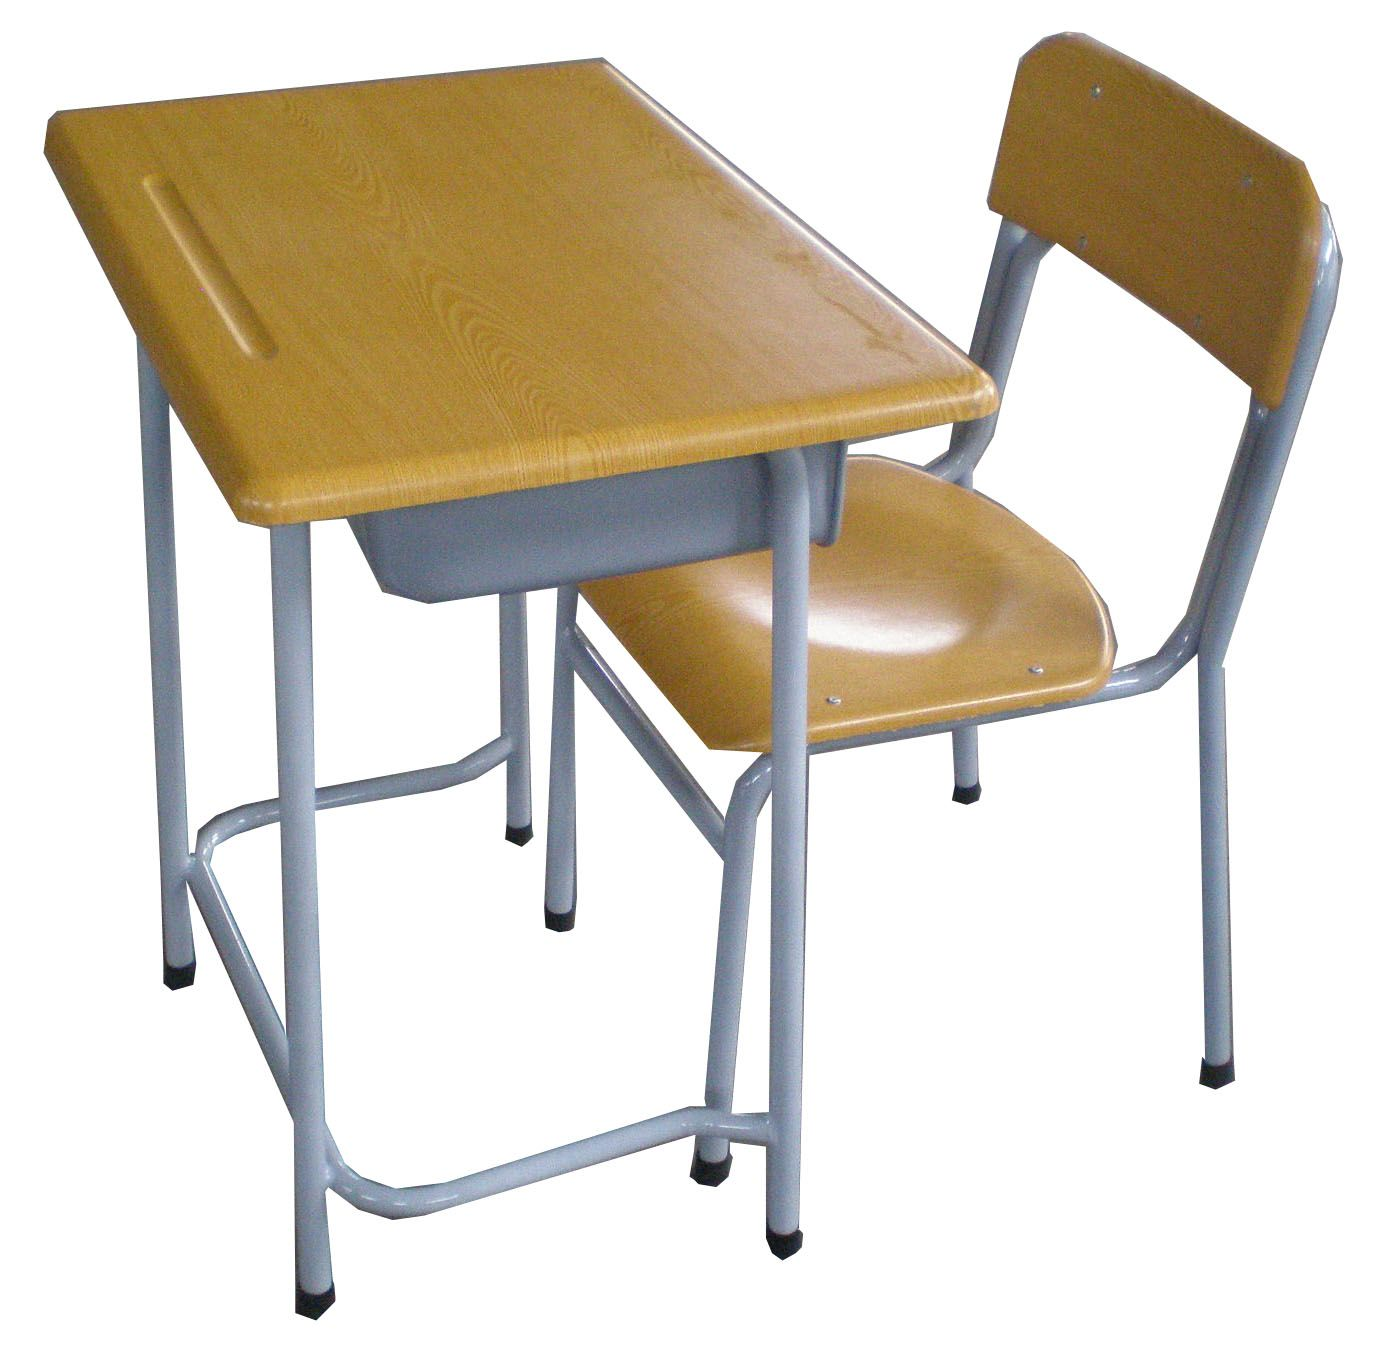 Classroom chairs under tables clipart clipart library library Free School Table Cliparts, Download Free Clip Art, Free Clip Art on ... clipart library library